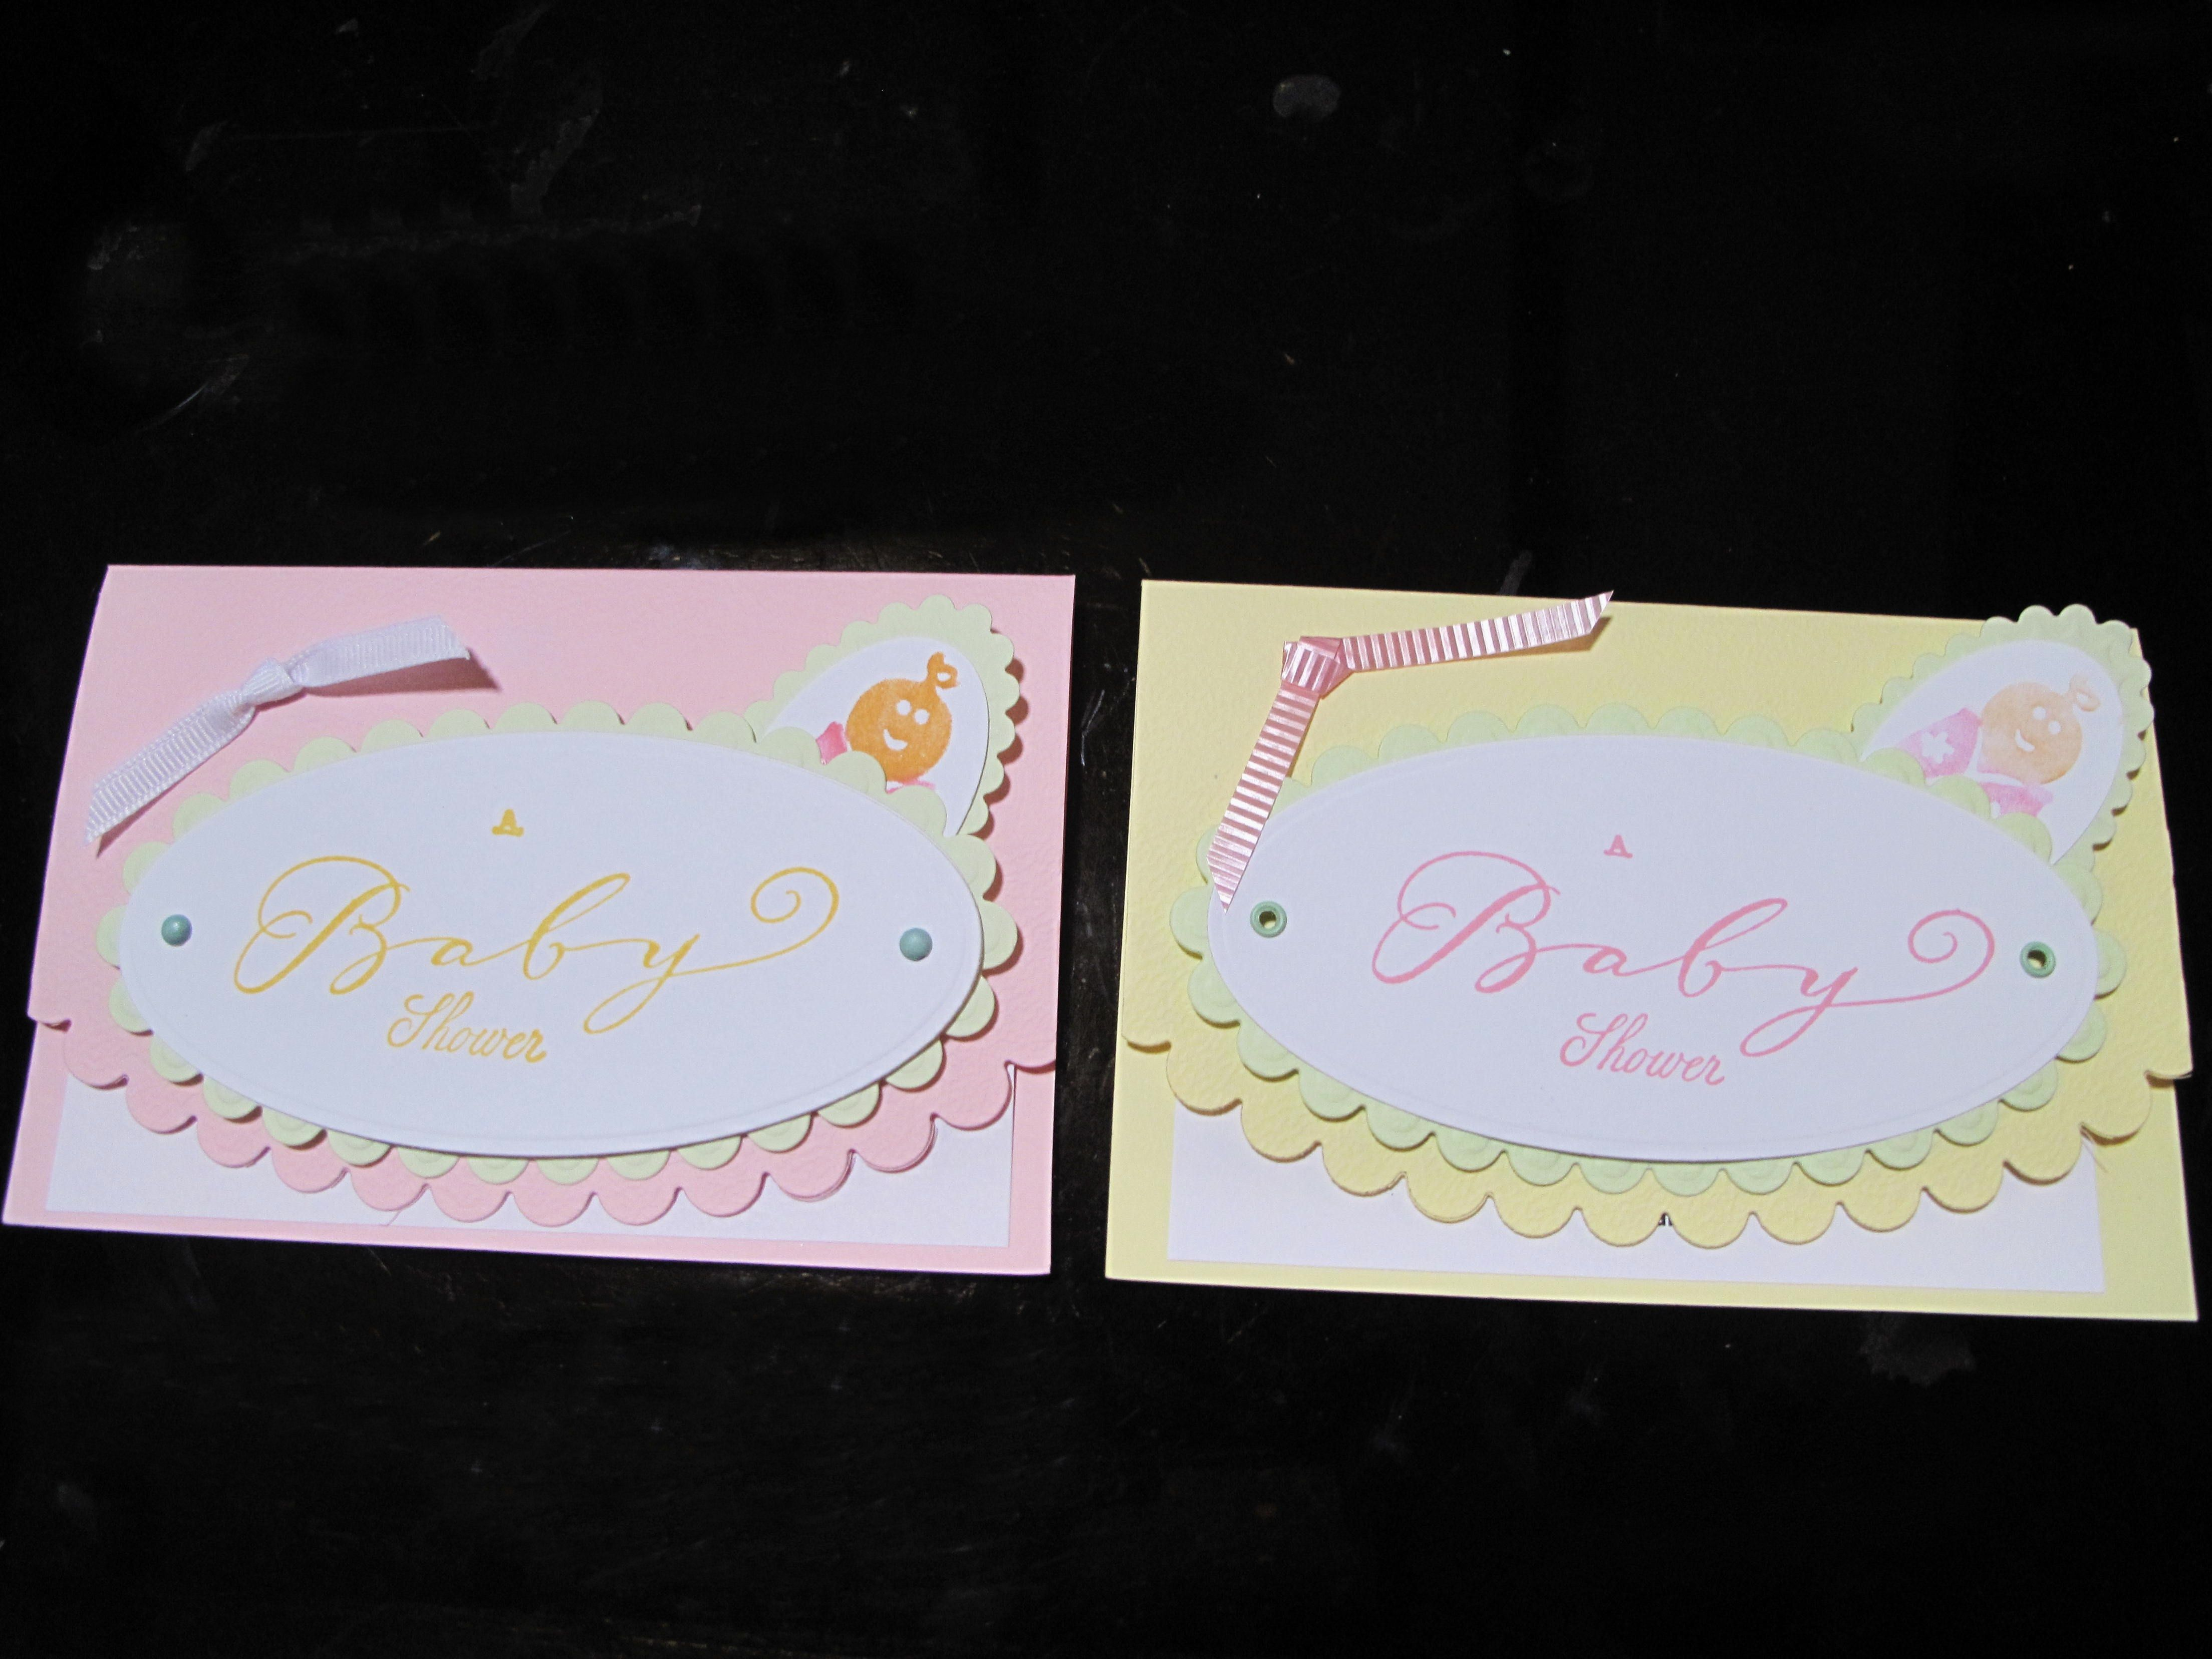 Baby Shower Invitations | My Greeting Cards | Pinterest: pinterest.com/pin/285908276316919885